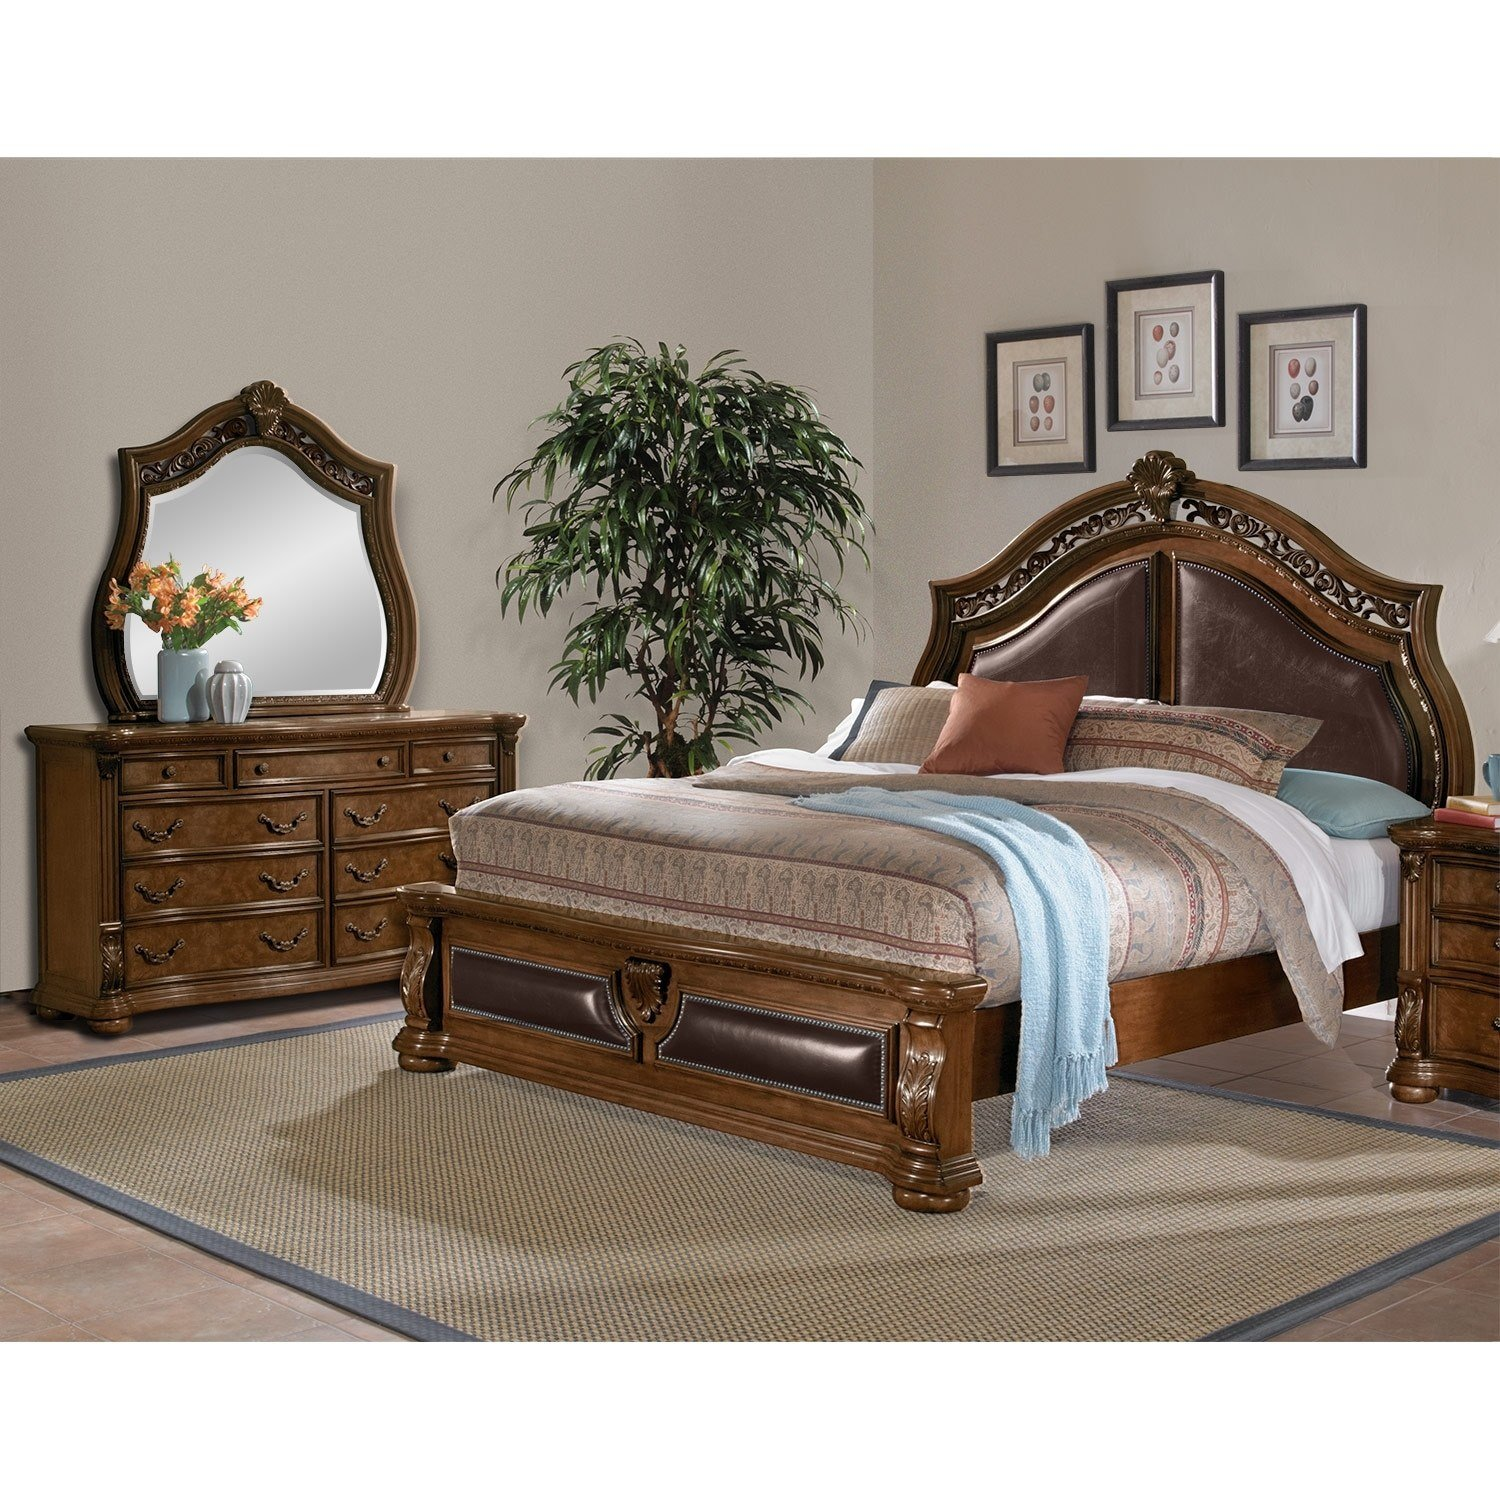 Best Morocco 5 Piece King Bedroom Set Pecan American Signature Furniture With Pictures